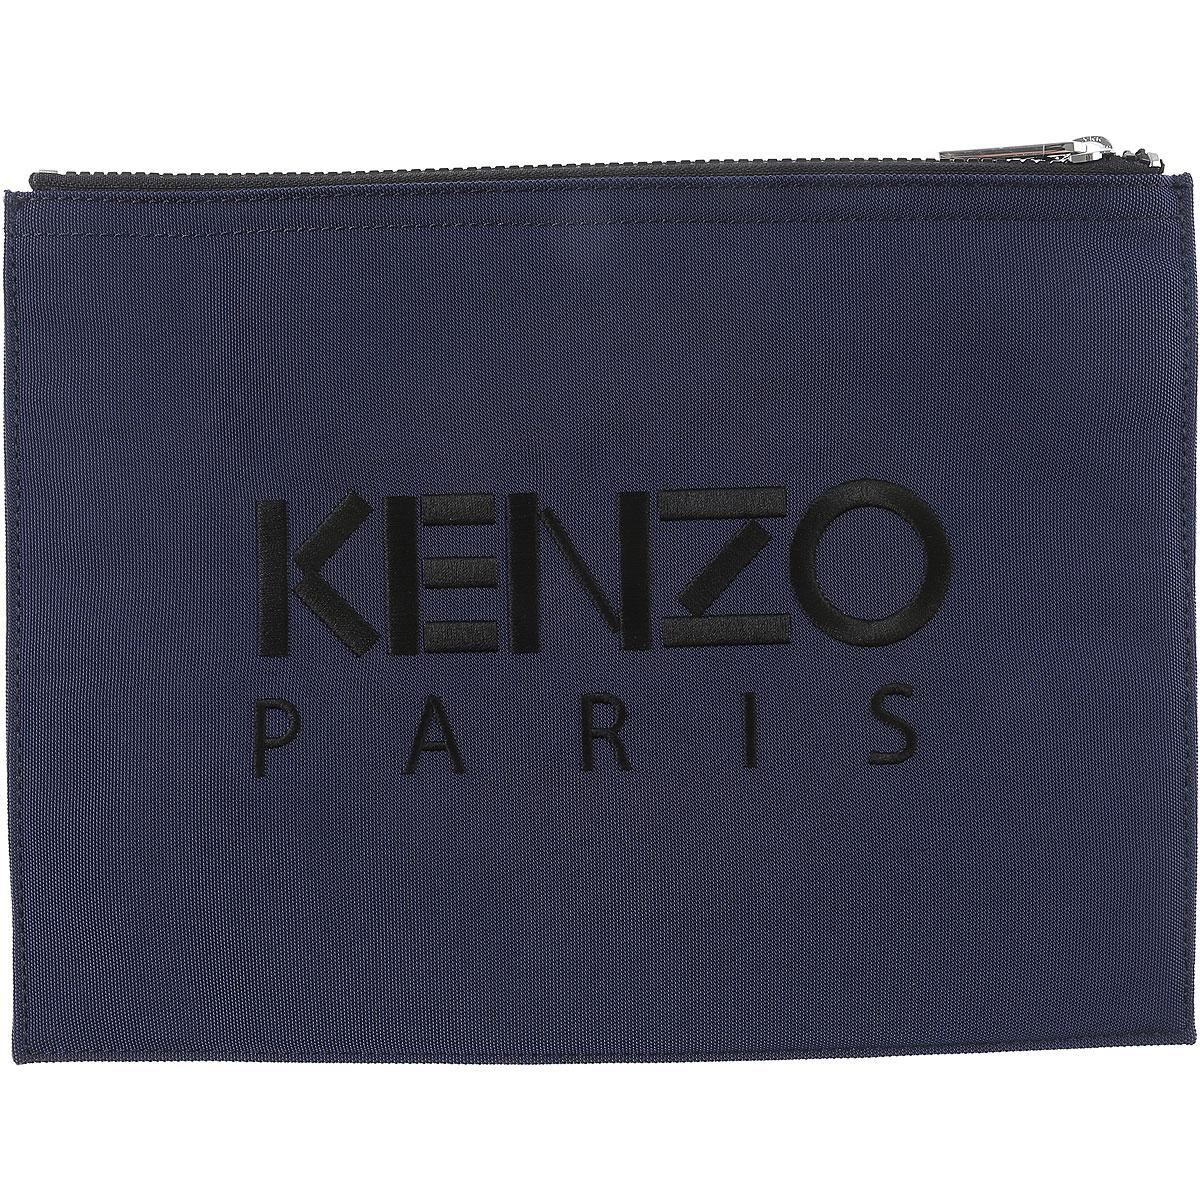 94a2bc26b KENZO - Blue Pouches On Sale for Men - Lyst. View fullscreen